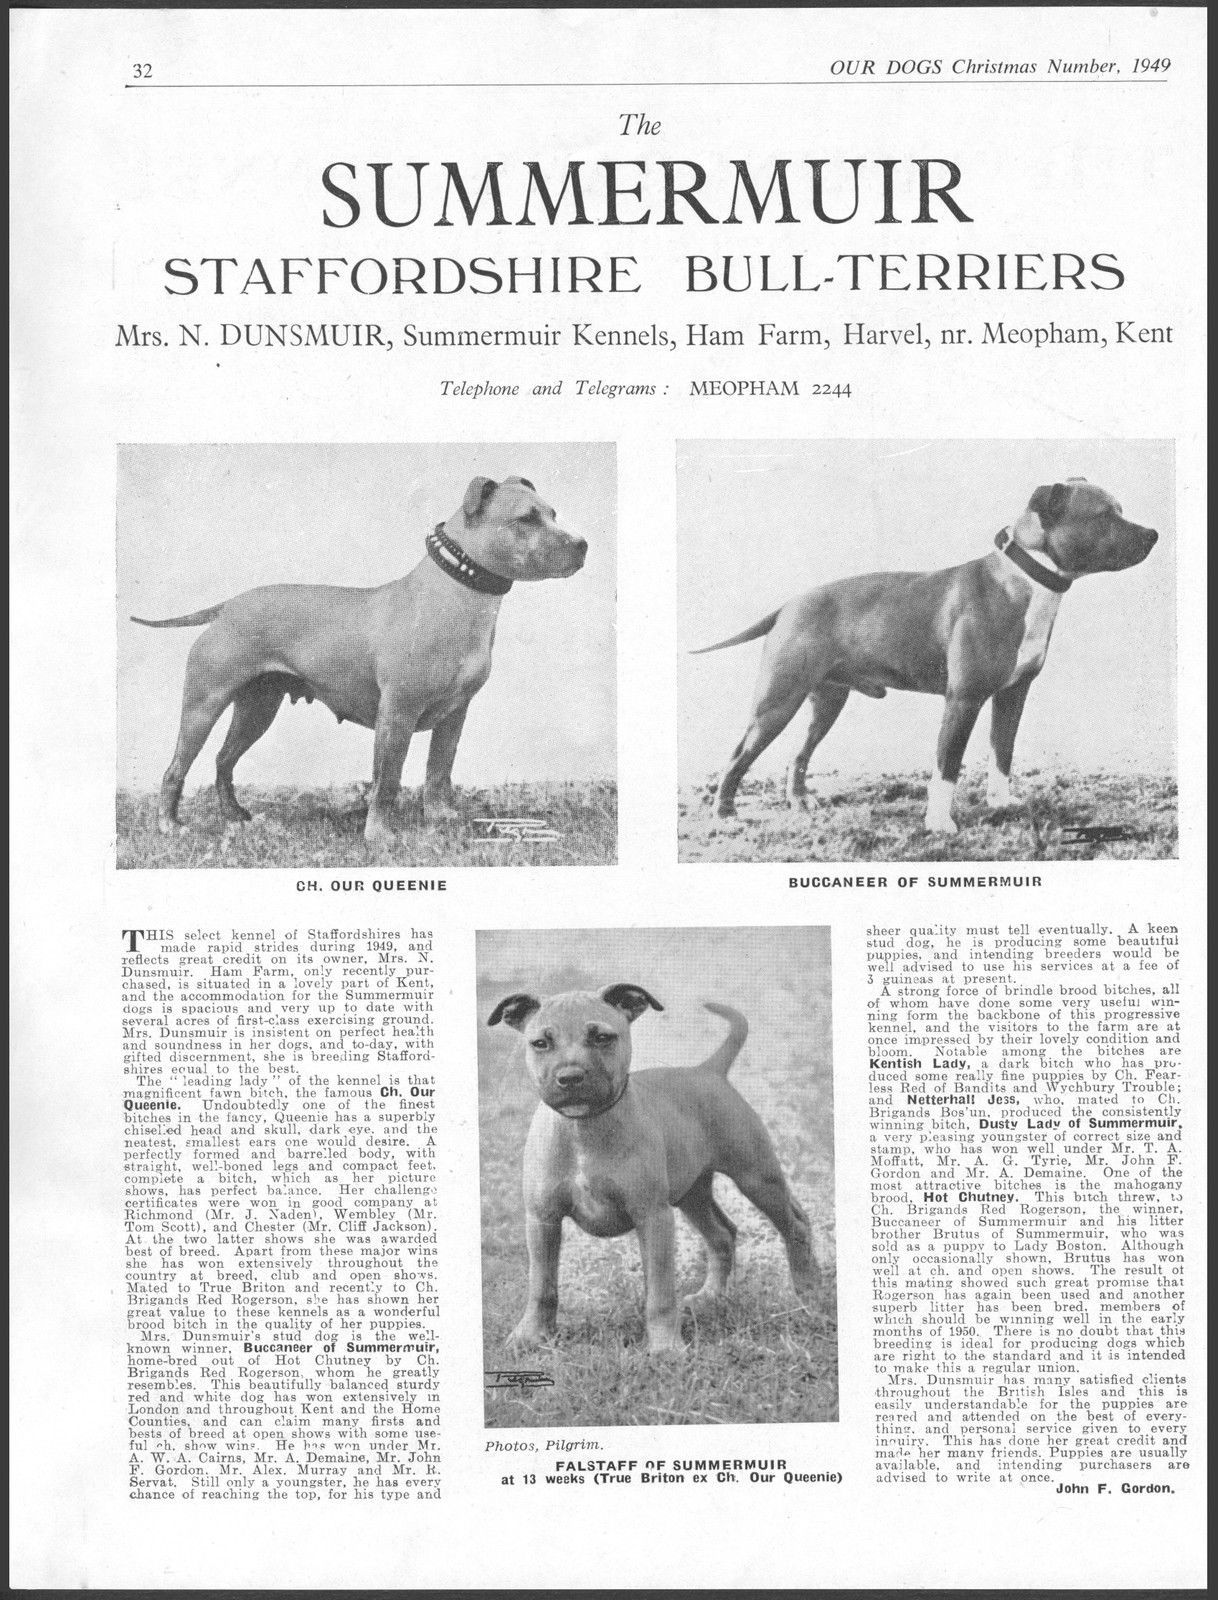 Staffordshire Bull Terrier Our Dogs Vintage 1949 Breed Kennel Staffordshire Bull Terrier Staffy Bull Terrier Staffordshire Dog